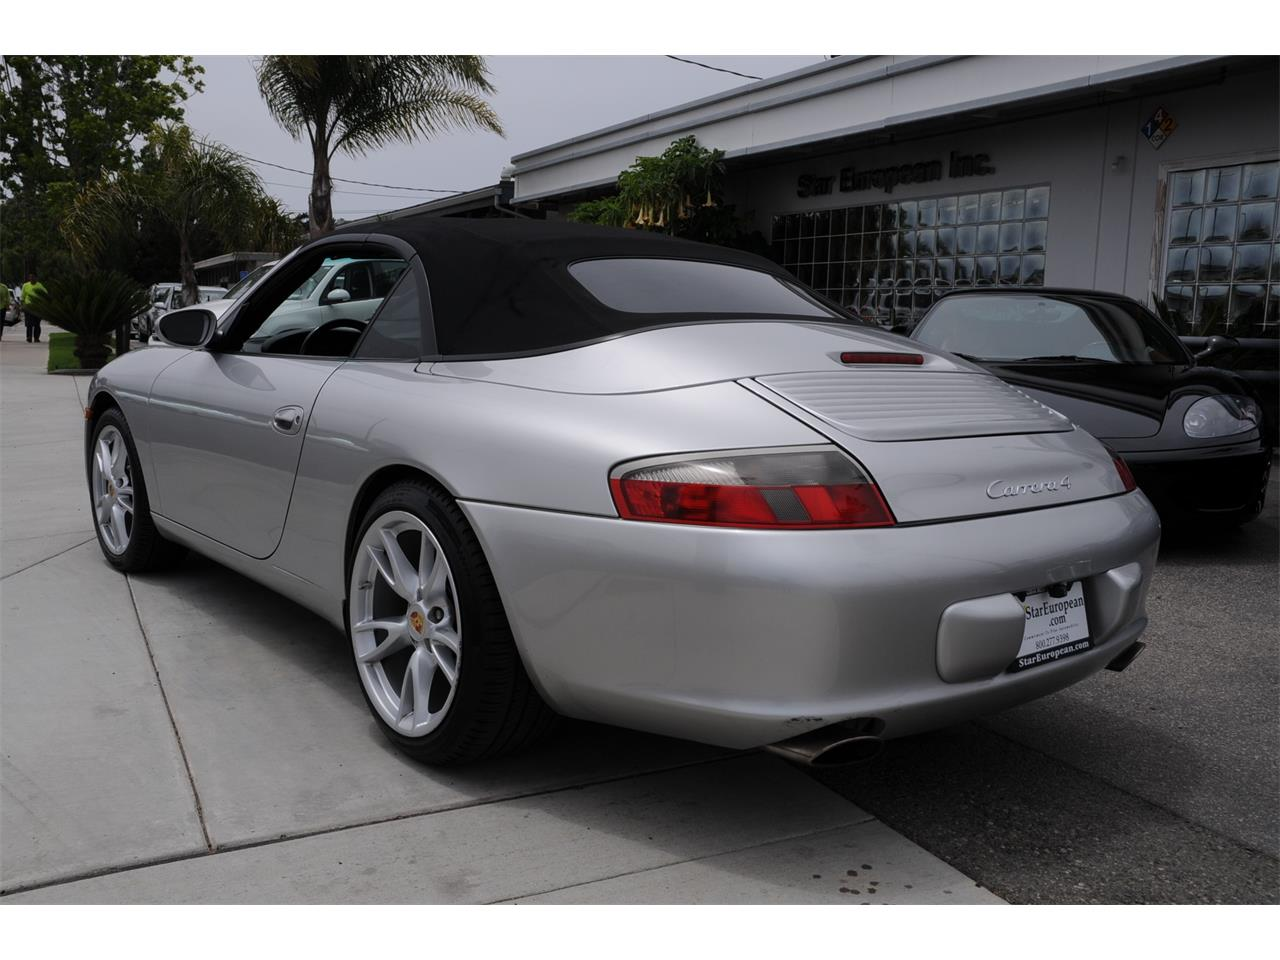 2003 Porsche 911 Carrera 4 Cabriolet For Sale Classiccars